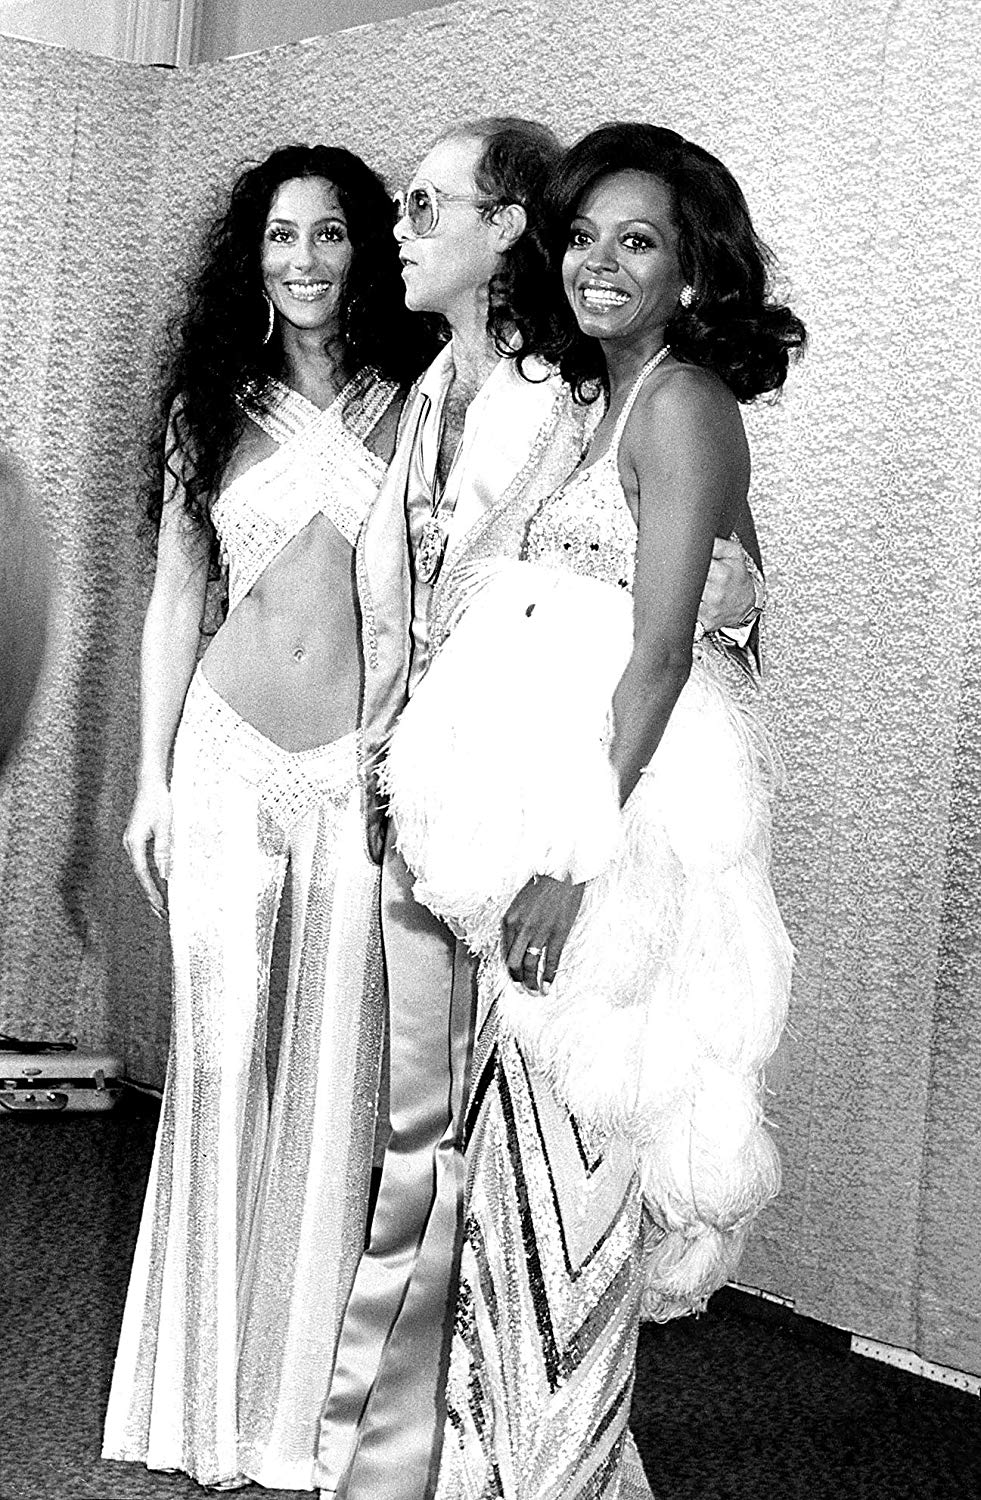 Vintage Style: Get Inspired By This Incredible Diana Ross OutfitsVintage Style: Get Inspired By This Incredible Diana Ross Outfits vintage style Vintage Style: Get Inspired By This Incredible Diana Ross Outfits bob